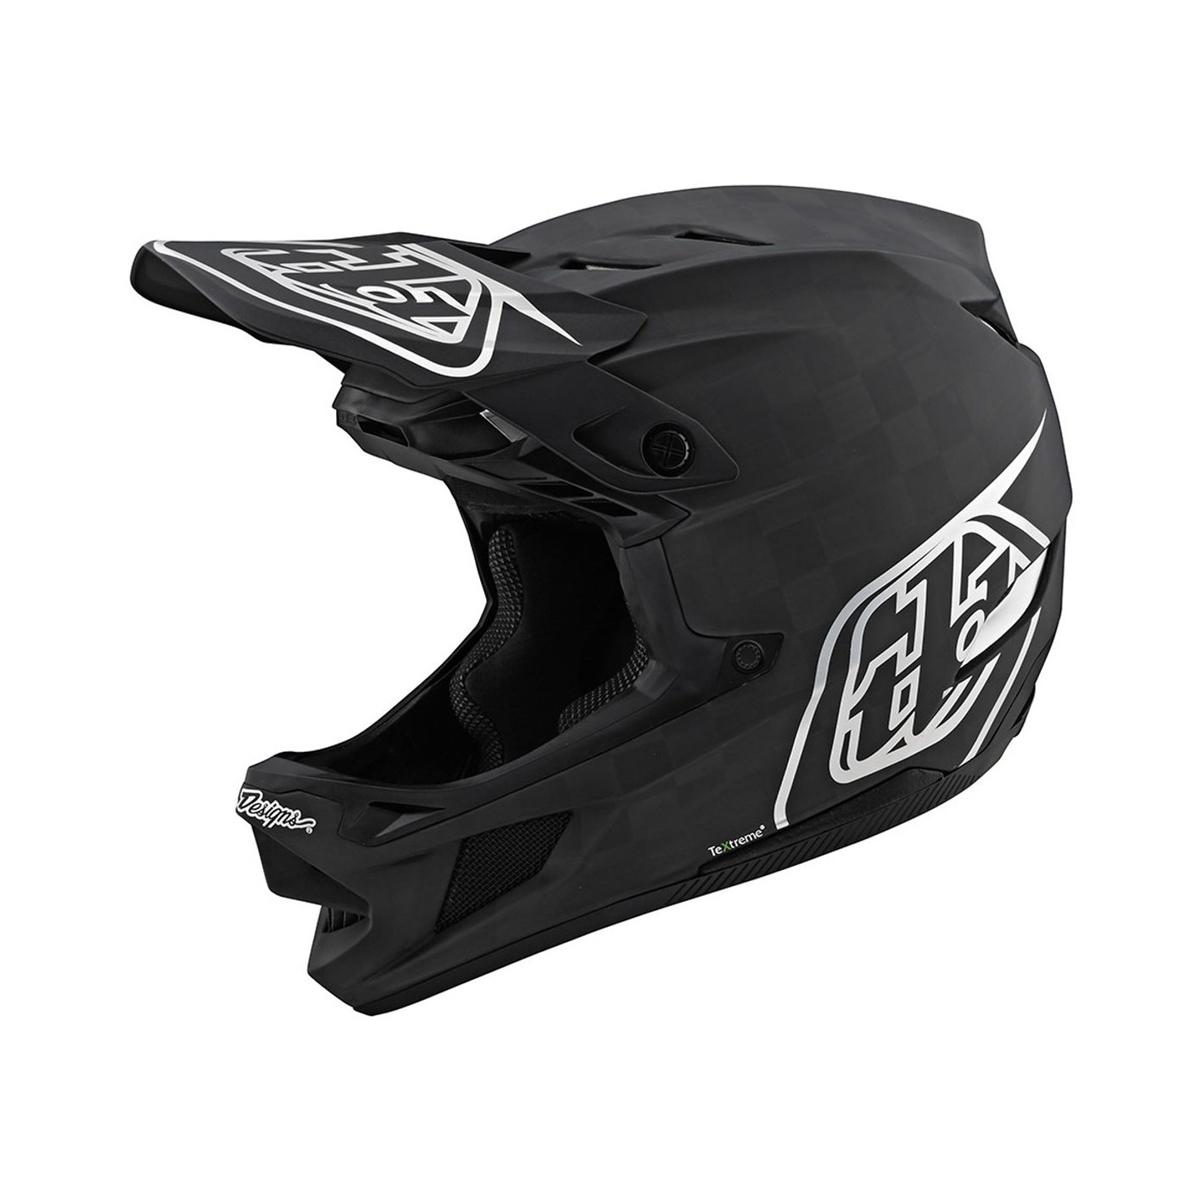 Full Face Helmet D4 MIPS TeXtreme Carbon Stealth Black/Silver Size XS (53-54cm)